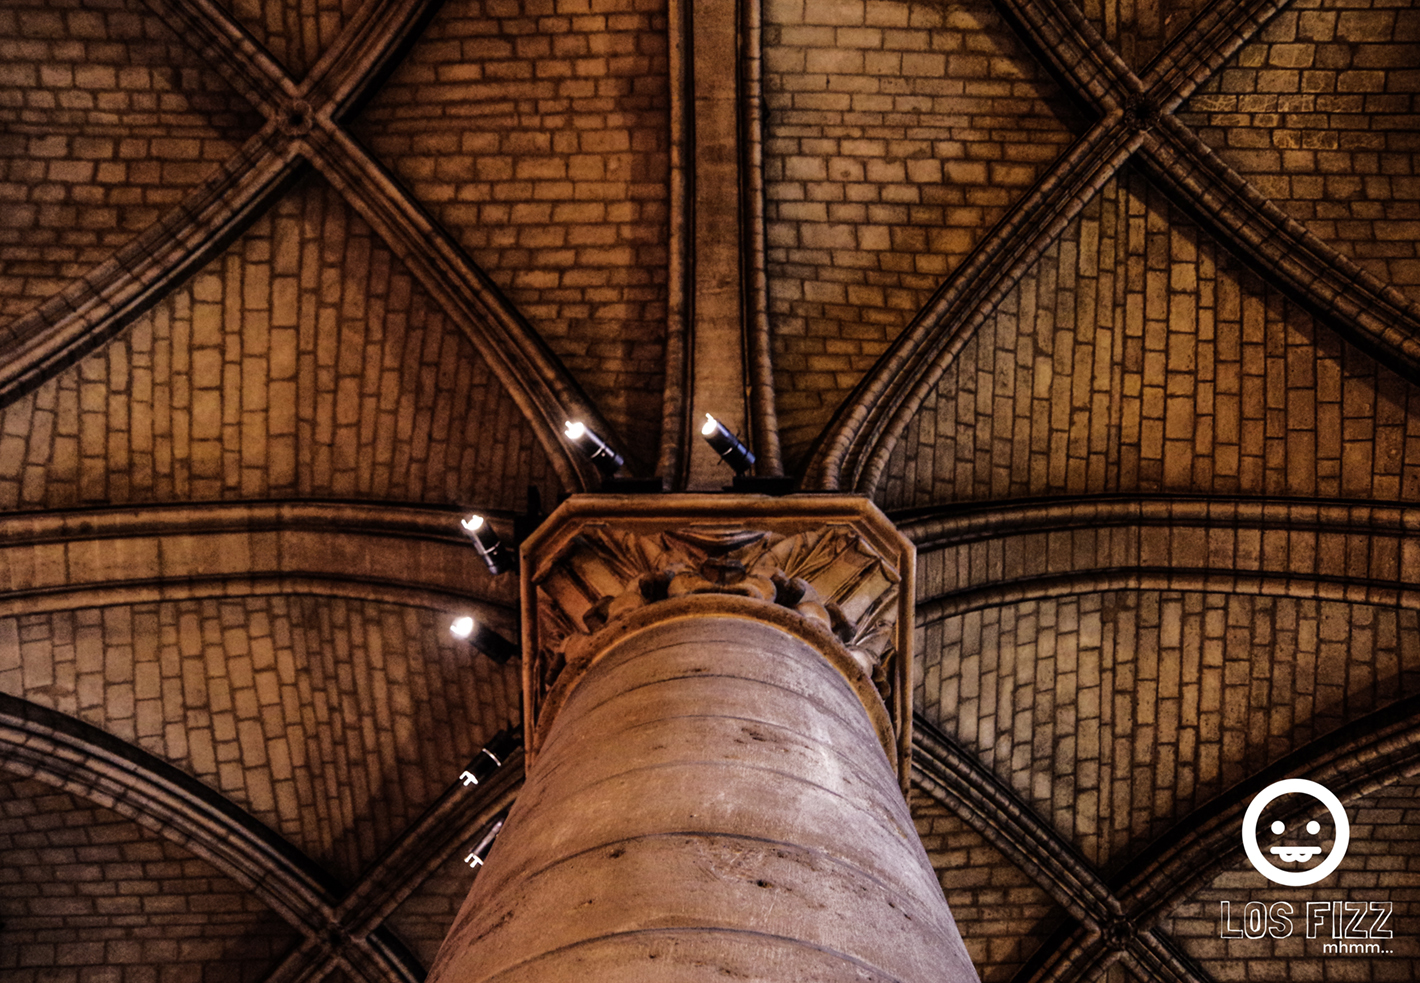 Column, Pillar inside of Notre Dame Cathedral in Paris, France Photo By LosFizz.